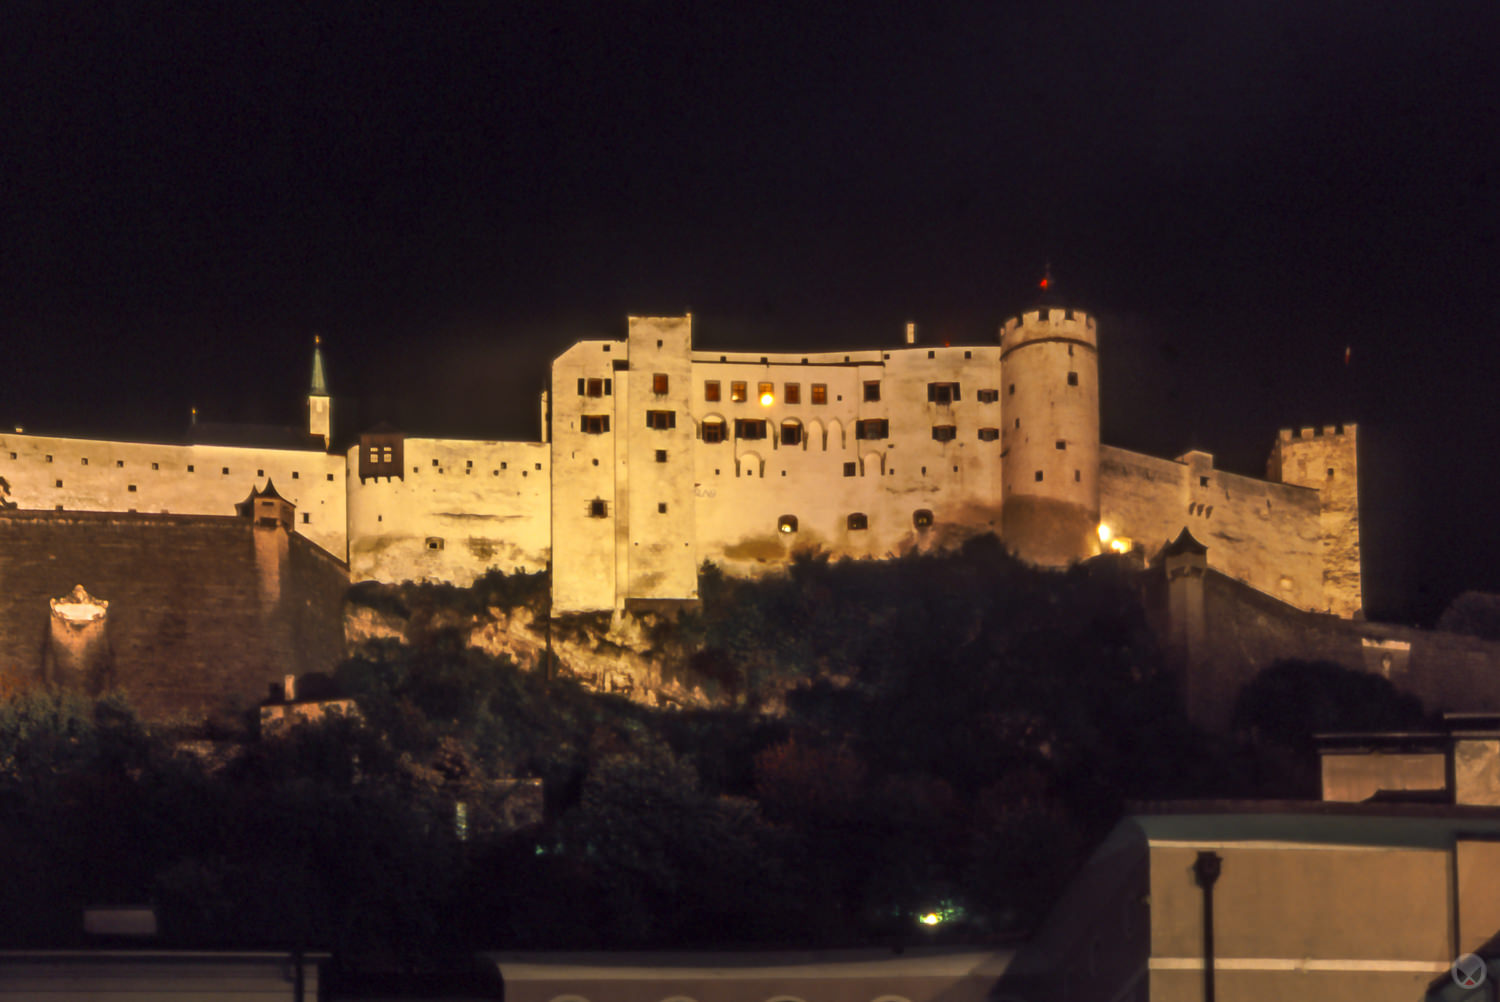 Festung Hohensalzburg at night.